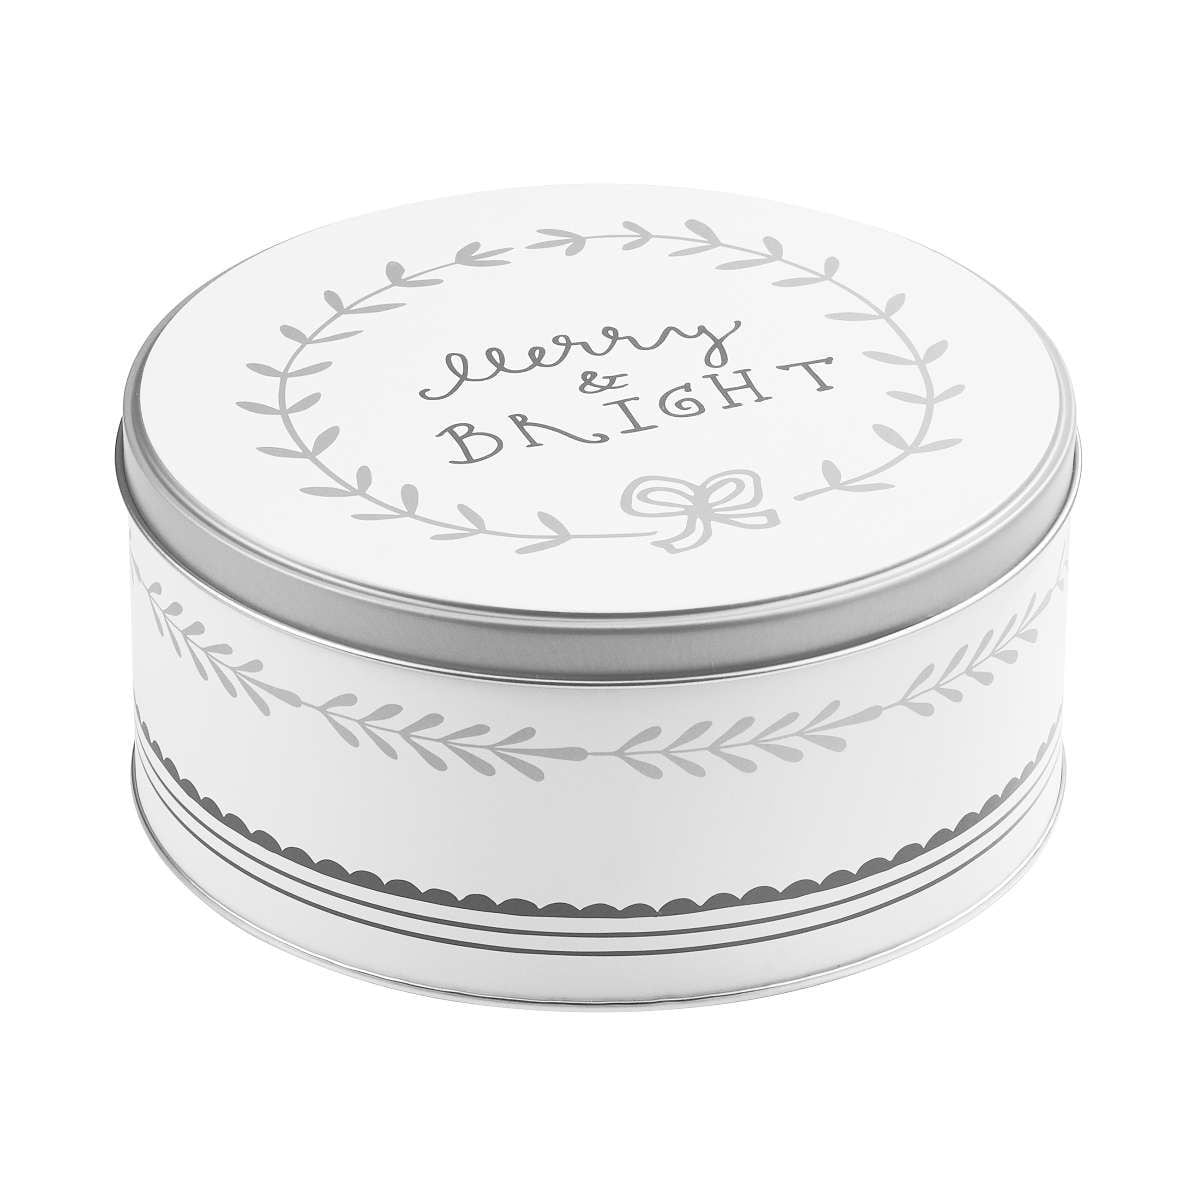 Butlers Cookie Jar Dose Merry & Bright Ø 16,7 cm weiss-silber